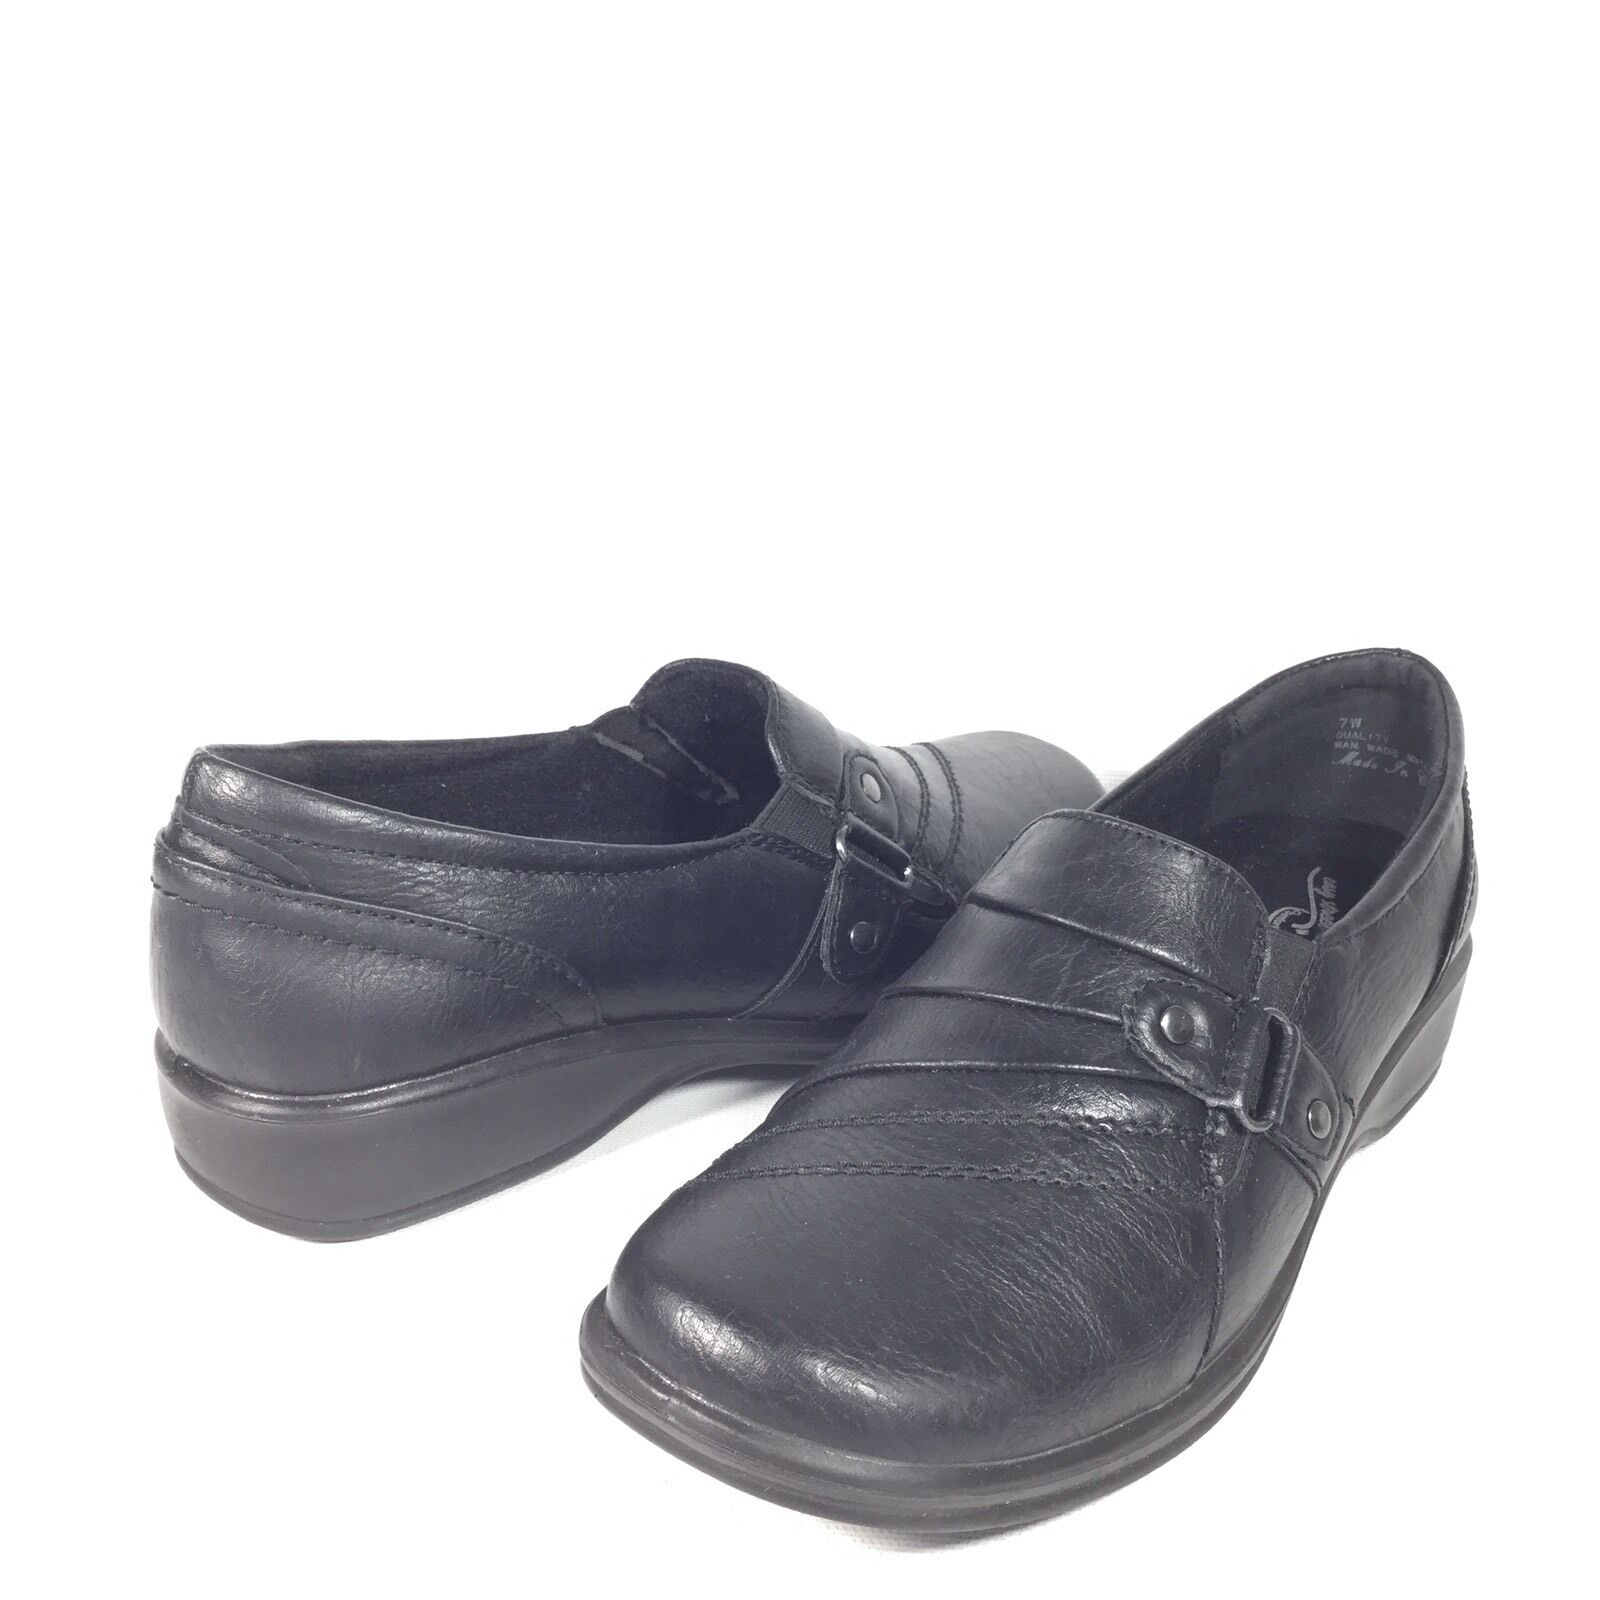 Easy Easy Easy Street Giver Women's Size 7 W Black Slip On Loafers shoes. dbef46